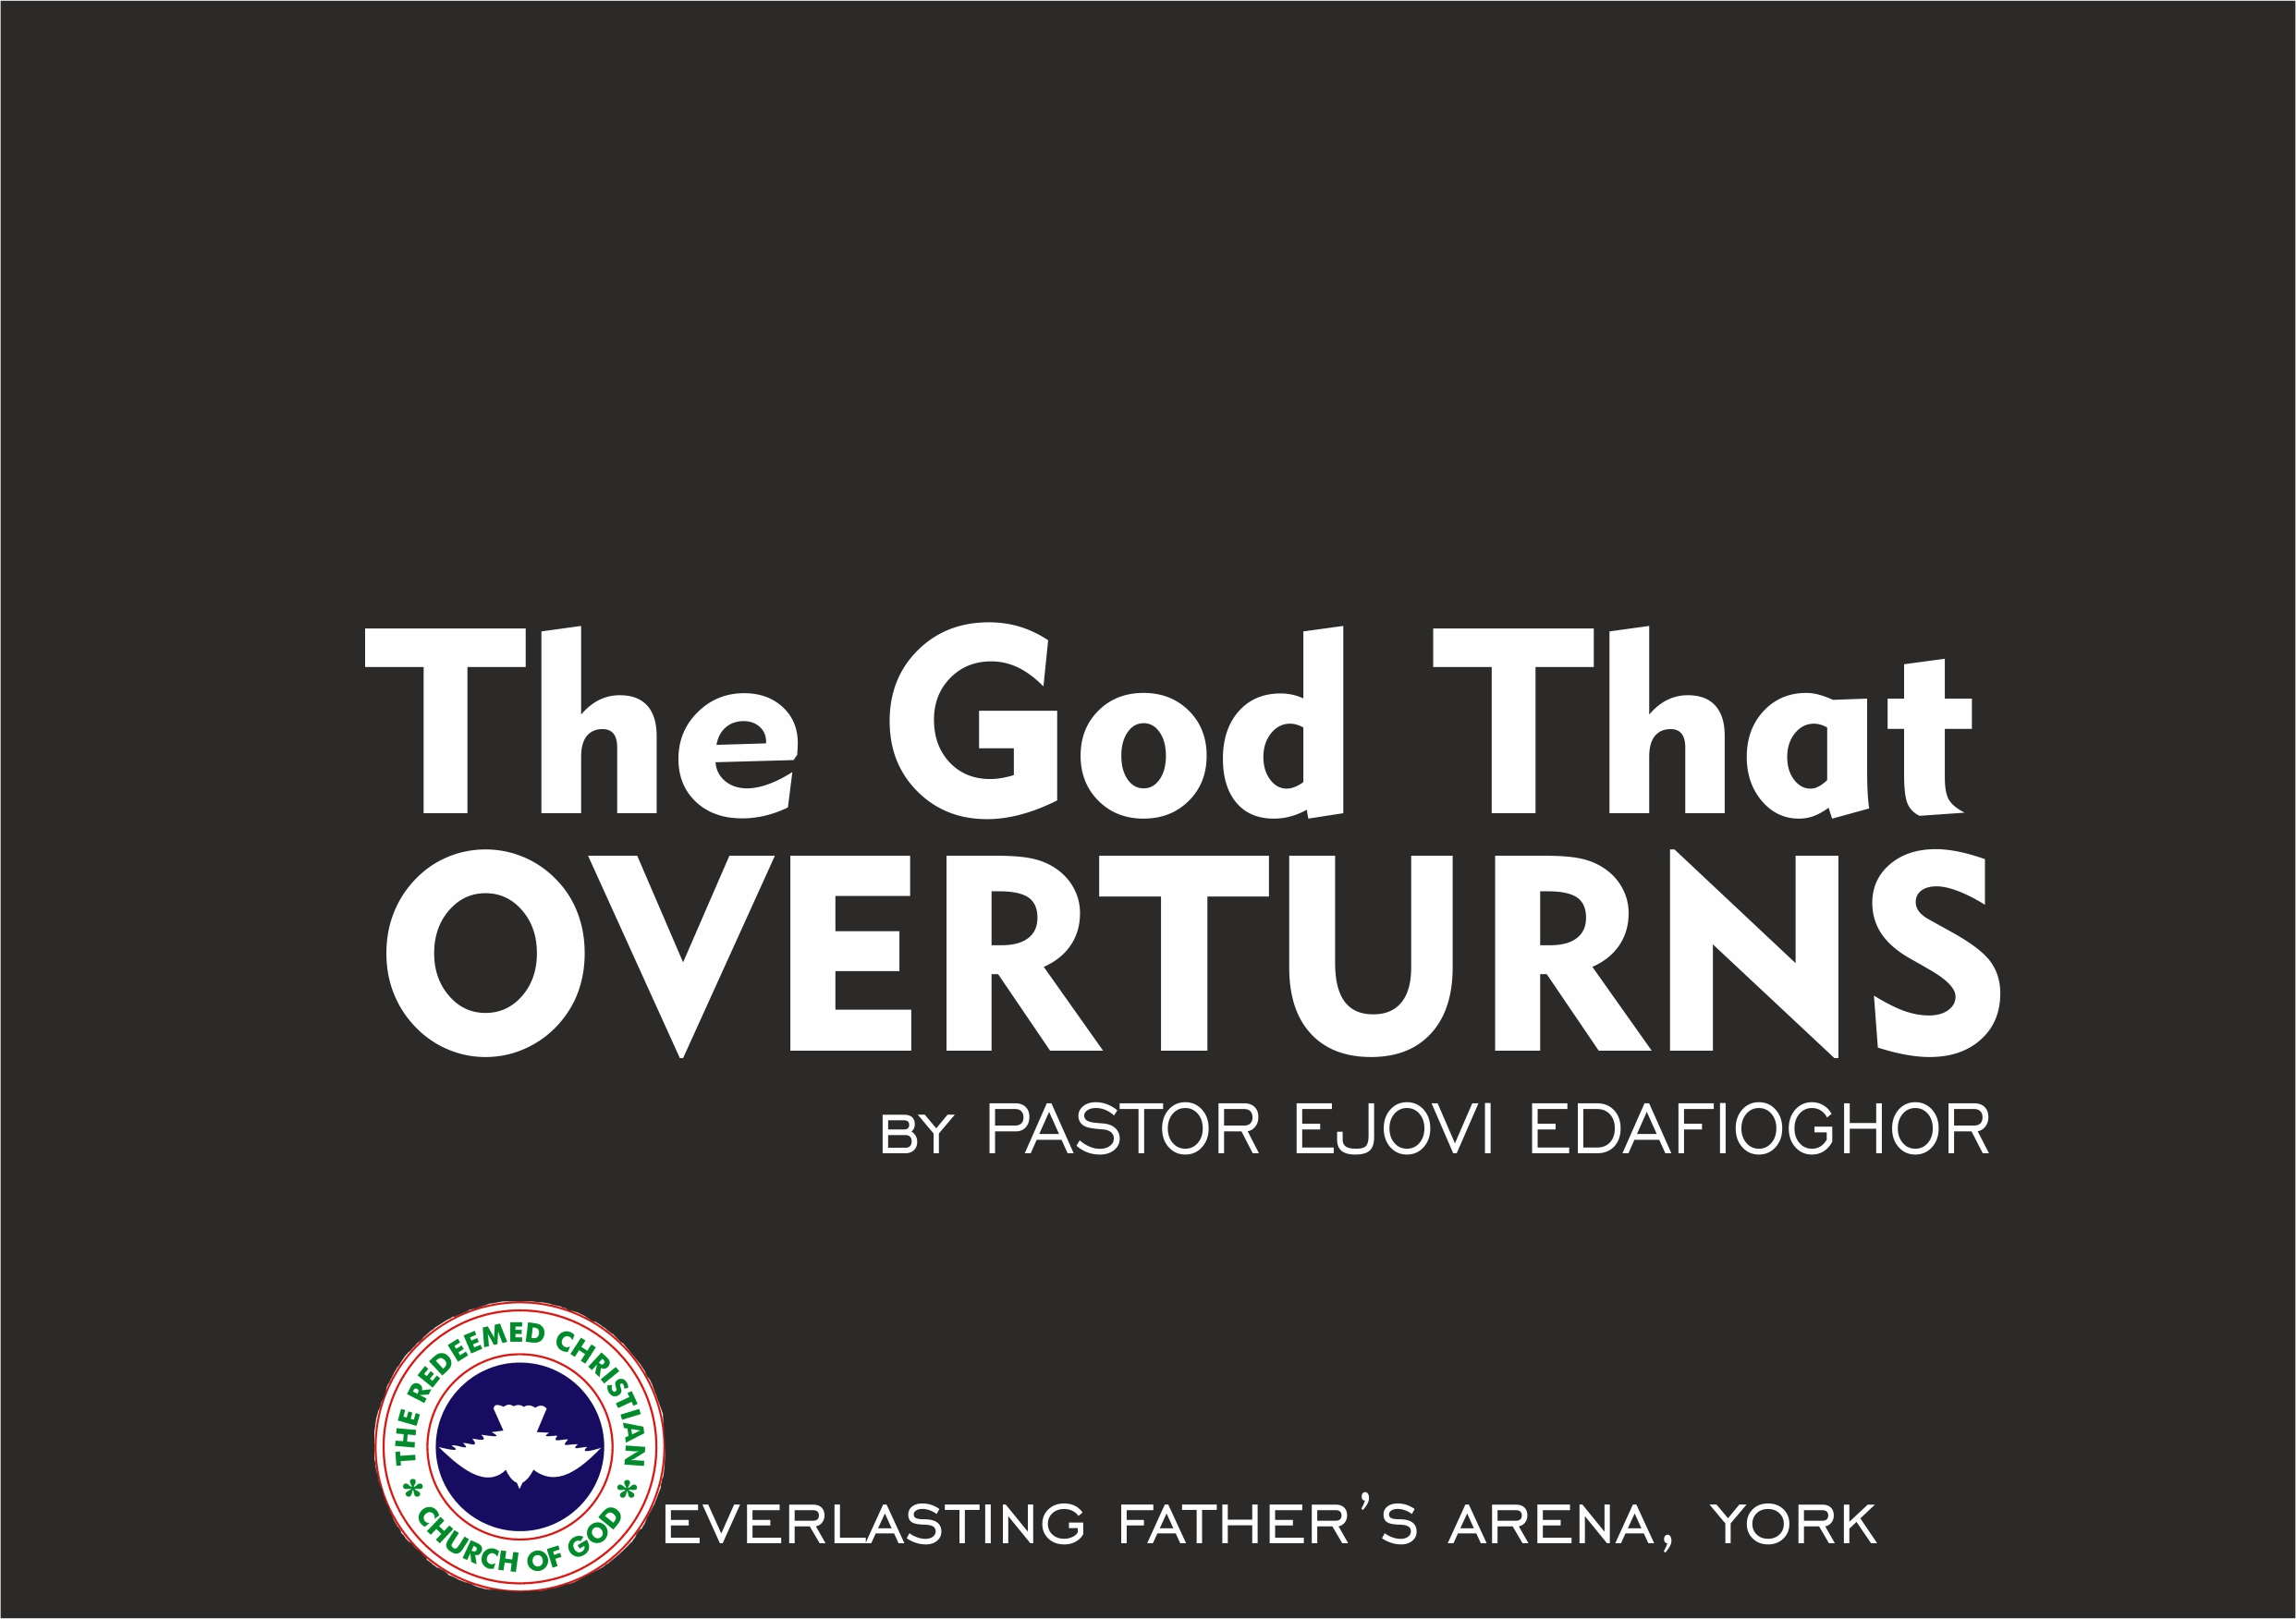 The God That Overturns, by Pastor Ejovi Edafioghor